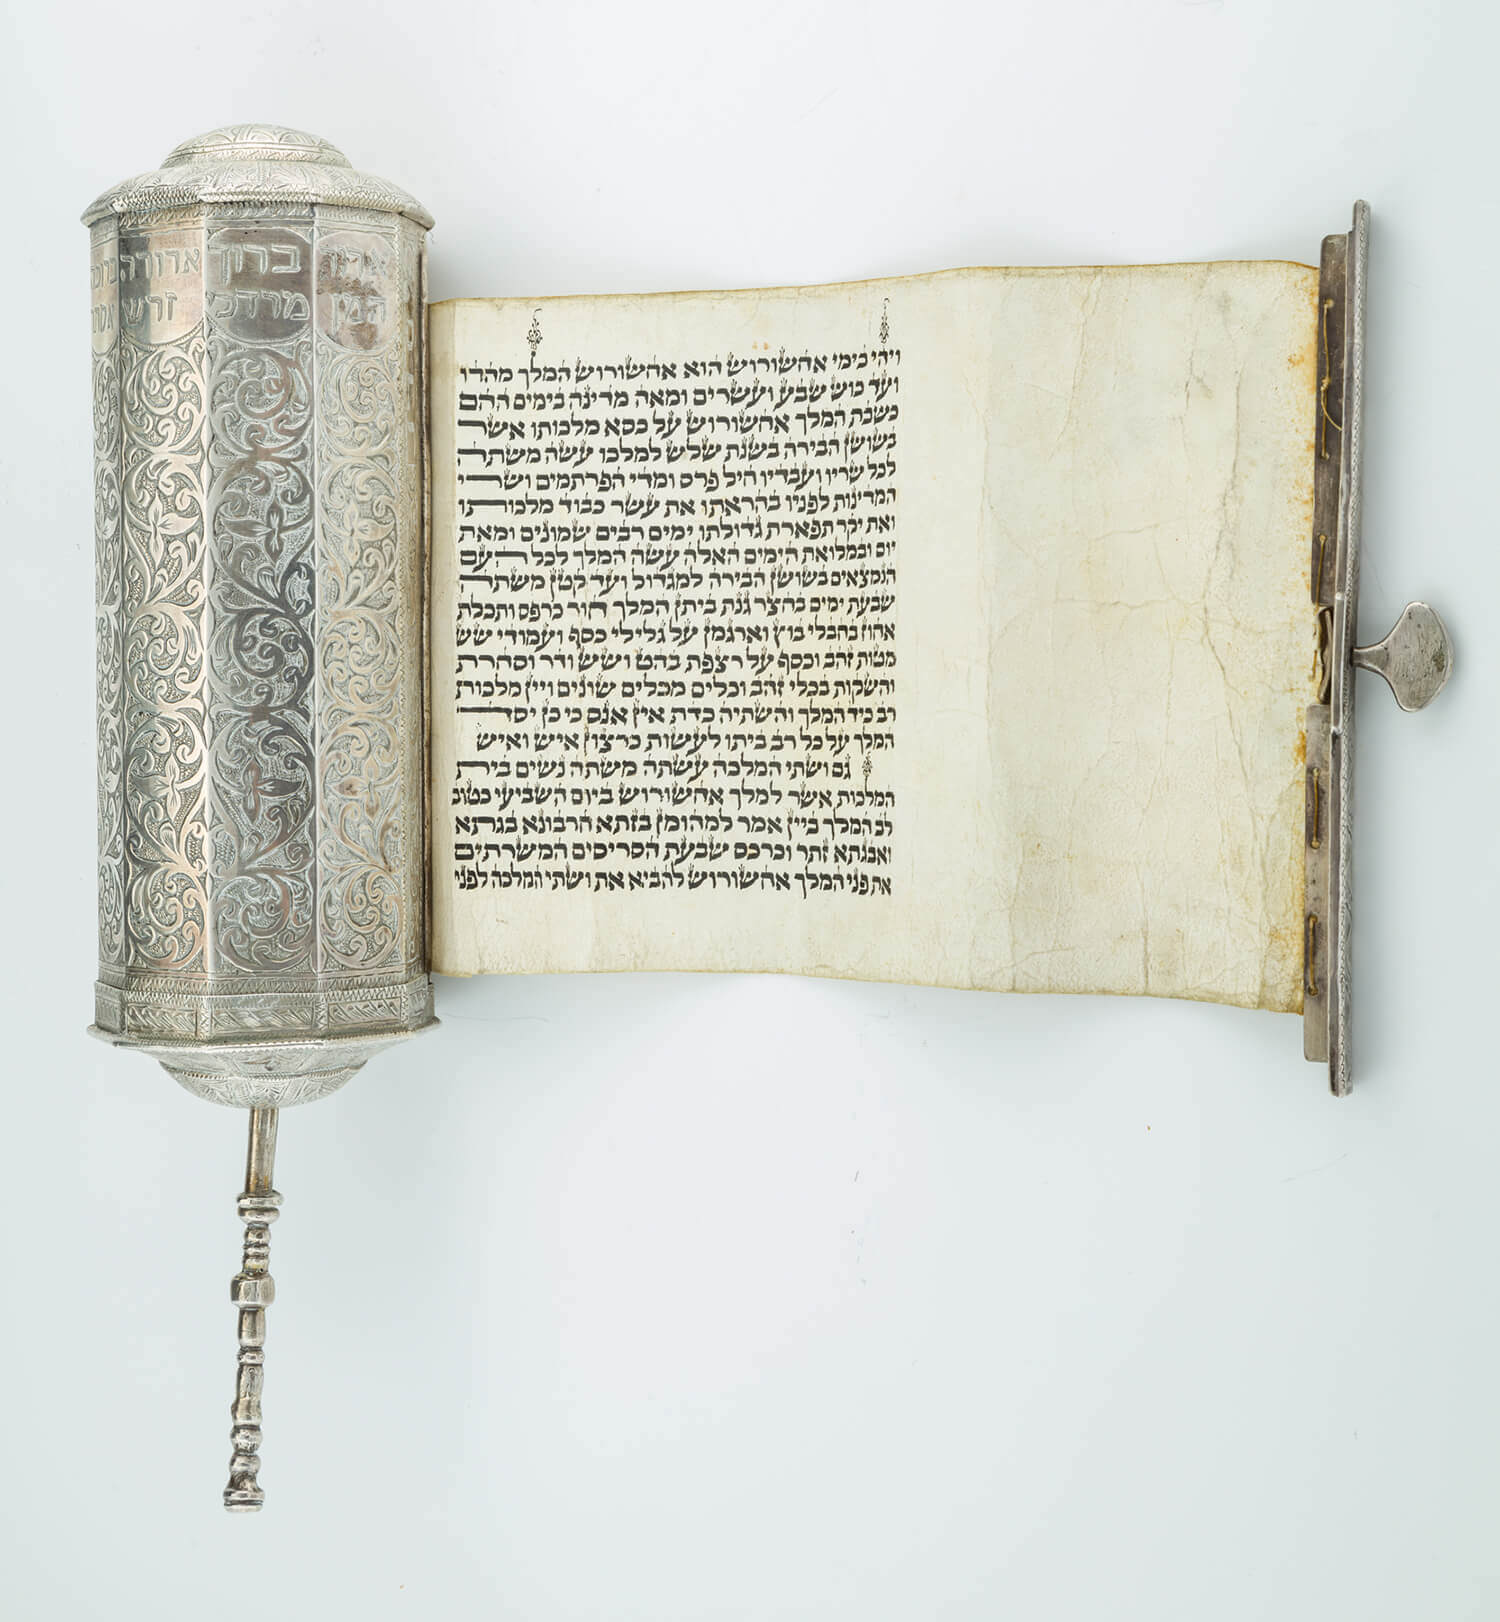 075. A LARGE SILVER MEGILLAH CASE WITH ORIGINAL MEGILLAH